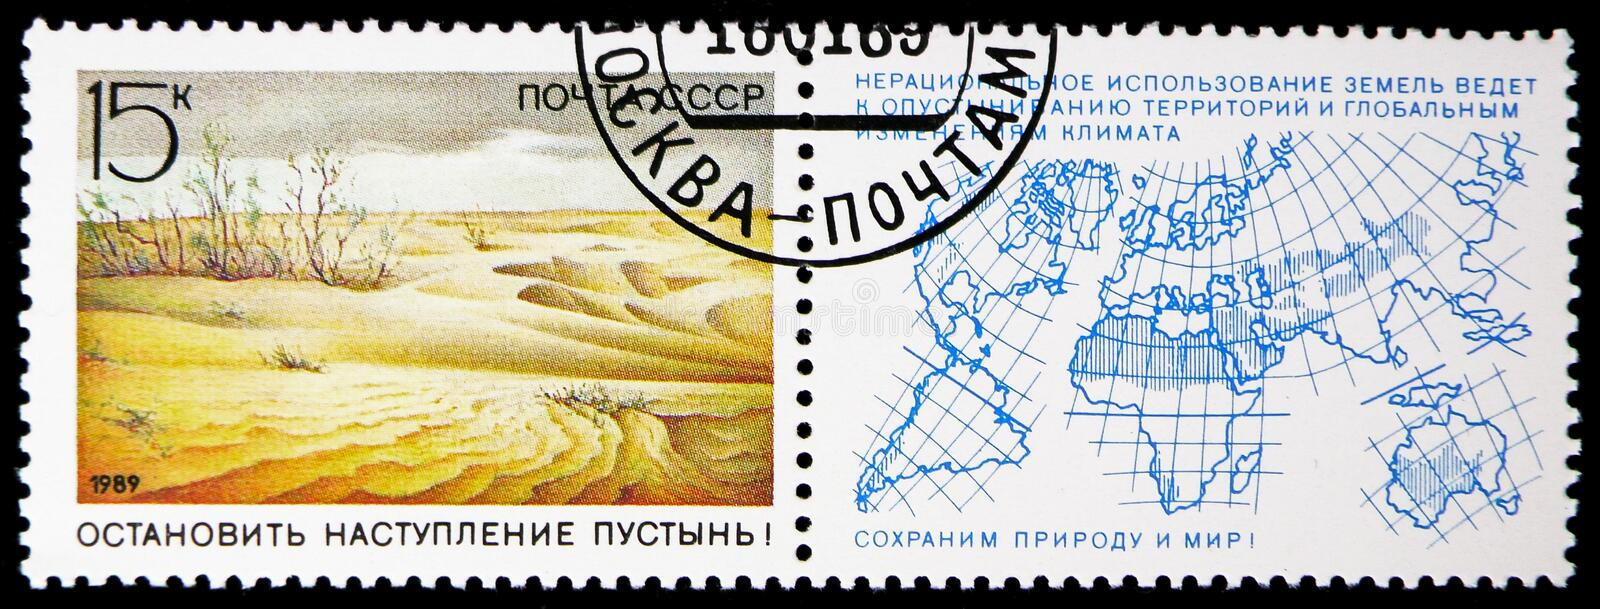 Anti-desertification campaign, Nature Conservation serie, circa 1989. MOSCOW, RUSSIA - NOVEMBER 10, 2018: A stamp printed in USSR (Russia) shows Anti stock image